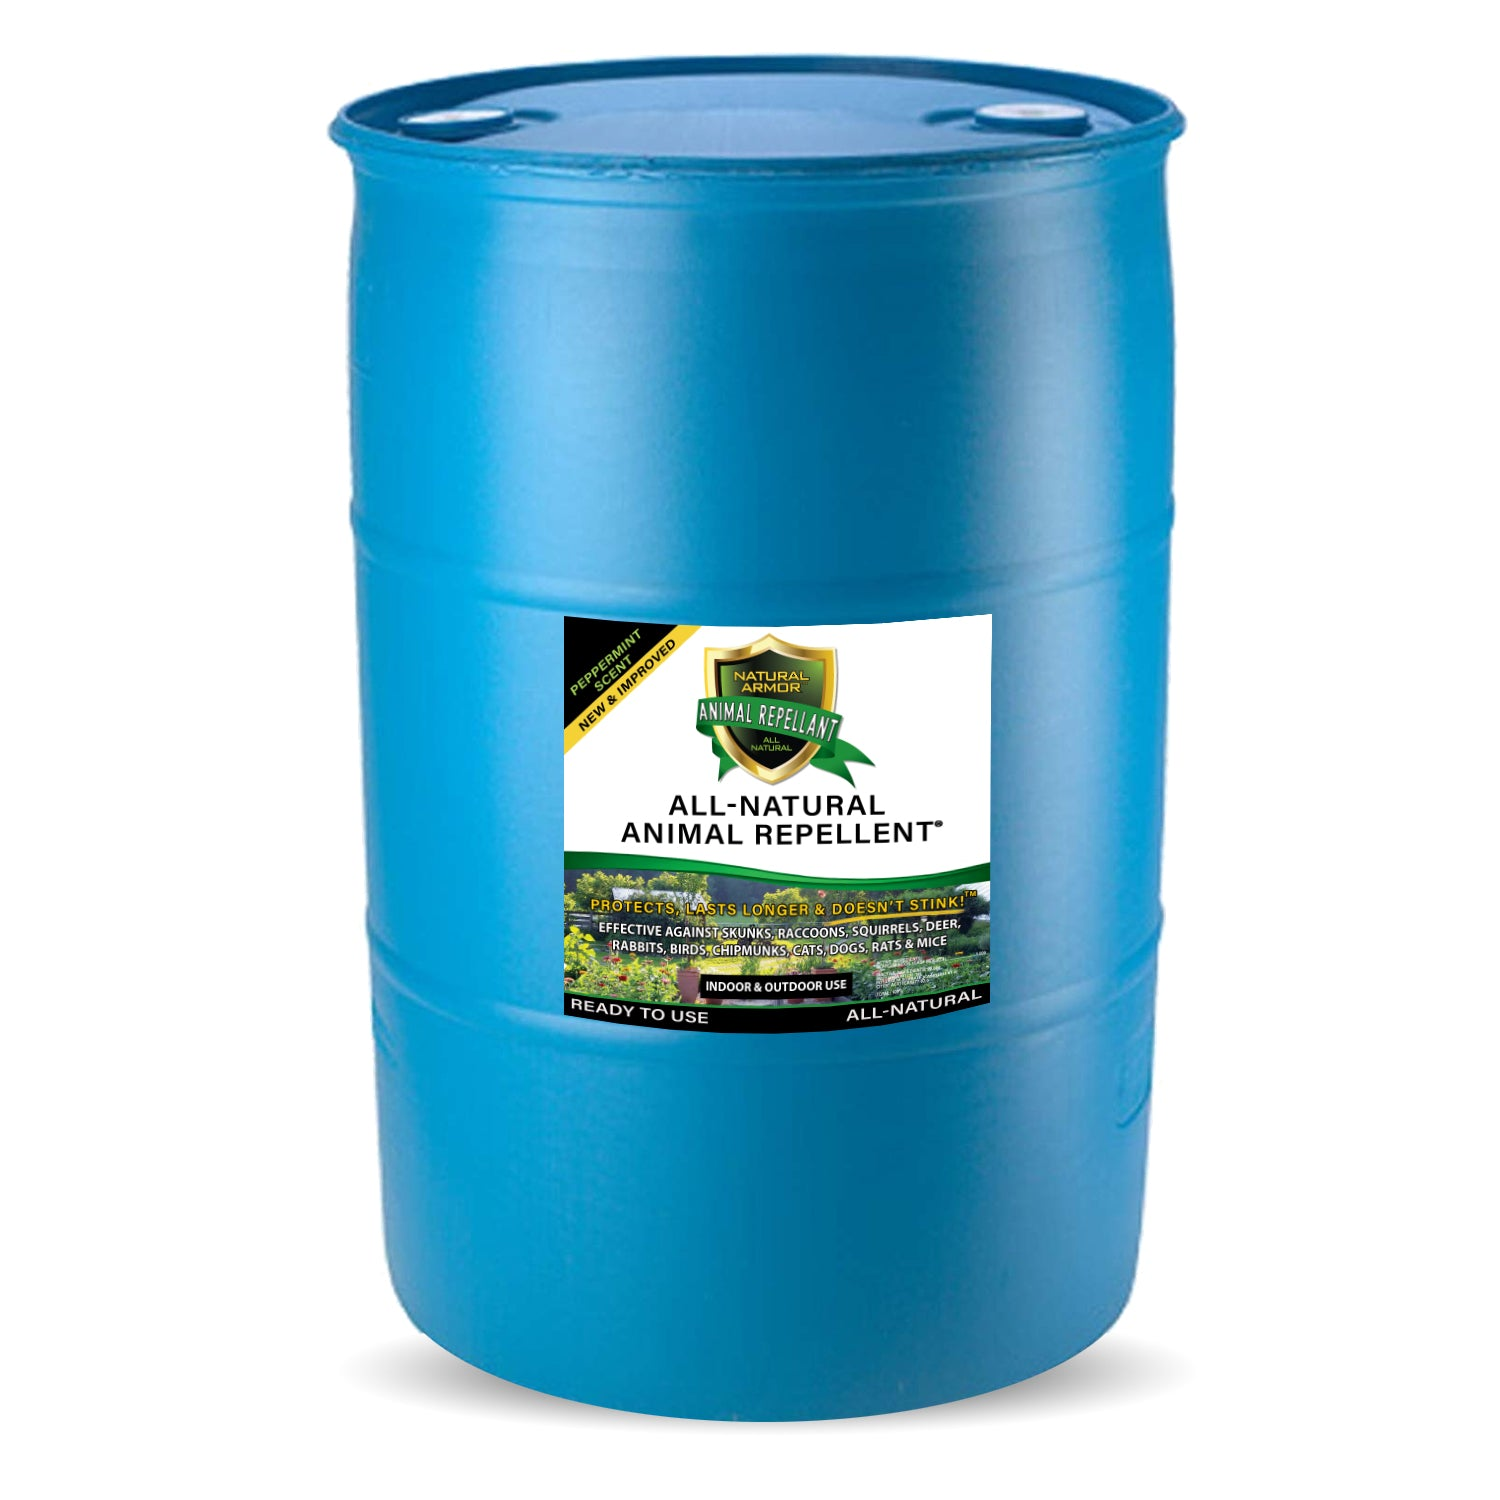 Animal Repellent - Ready to Use - Peppermint - (1) 55 Gallon Drum